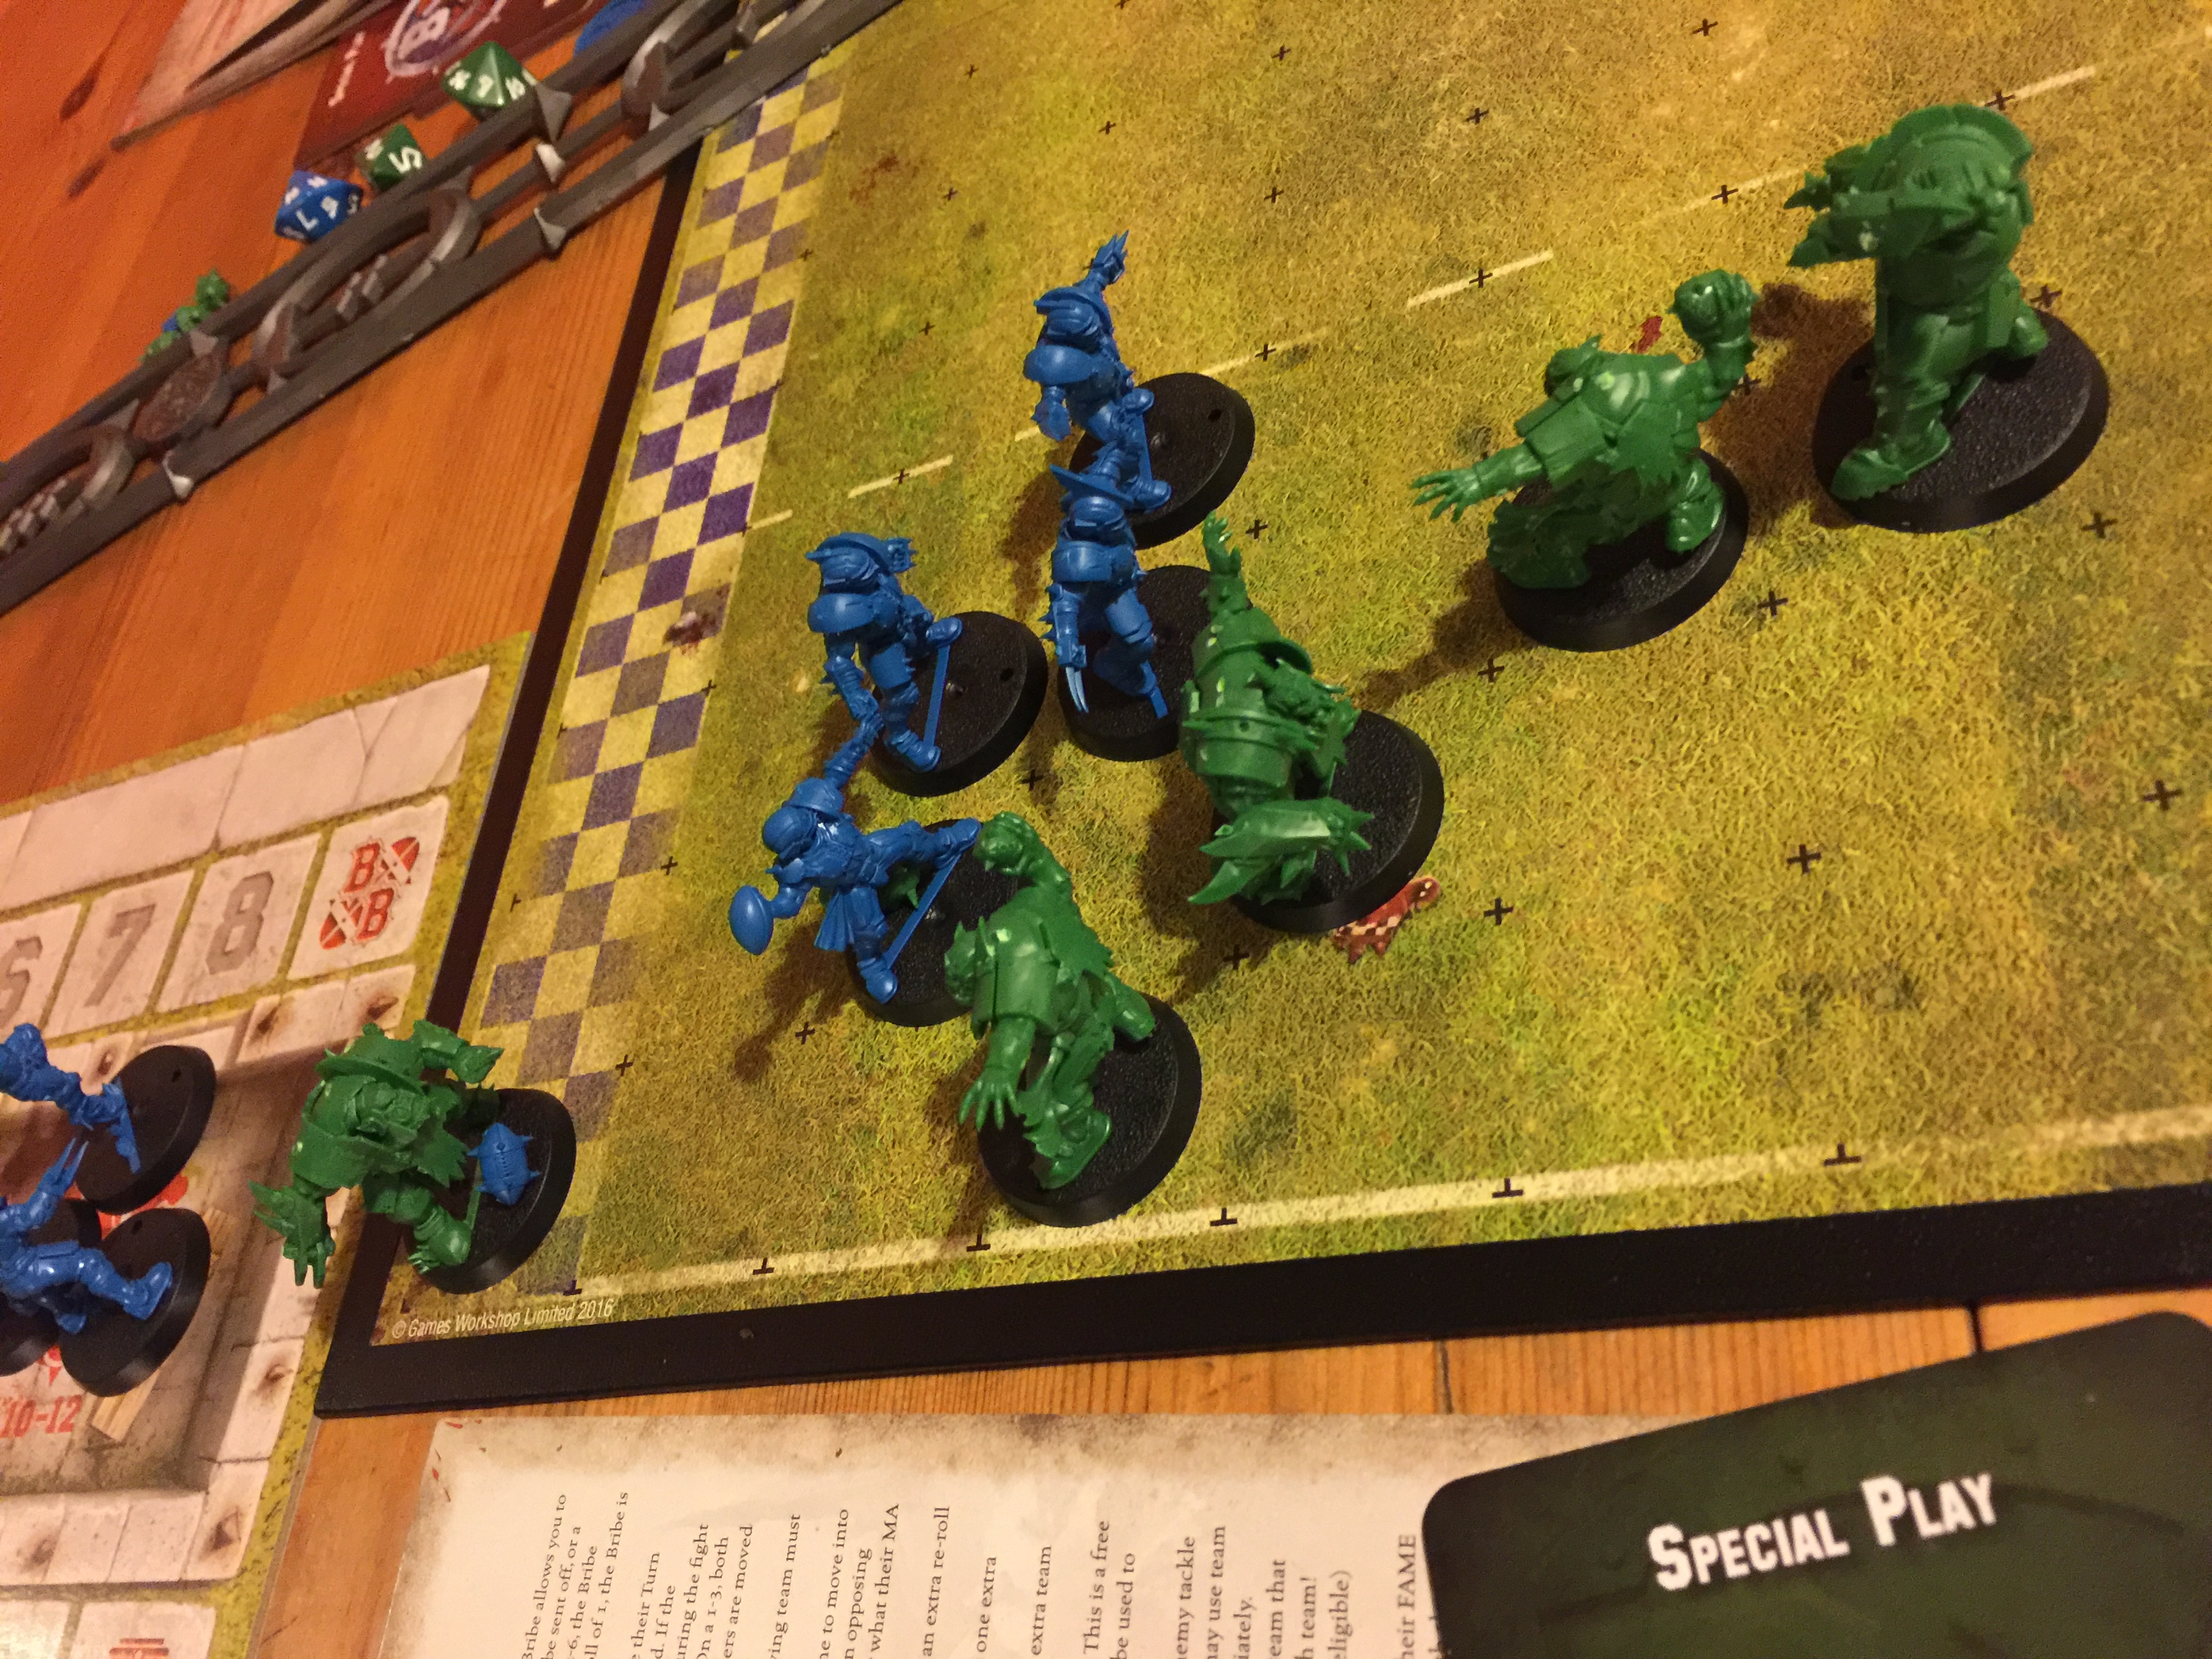 Touchdown to the orcs in green, apparently by pulling off an unlikely dodge around the back.